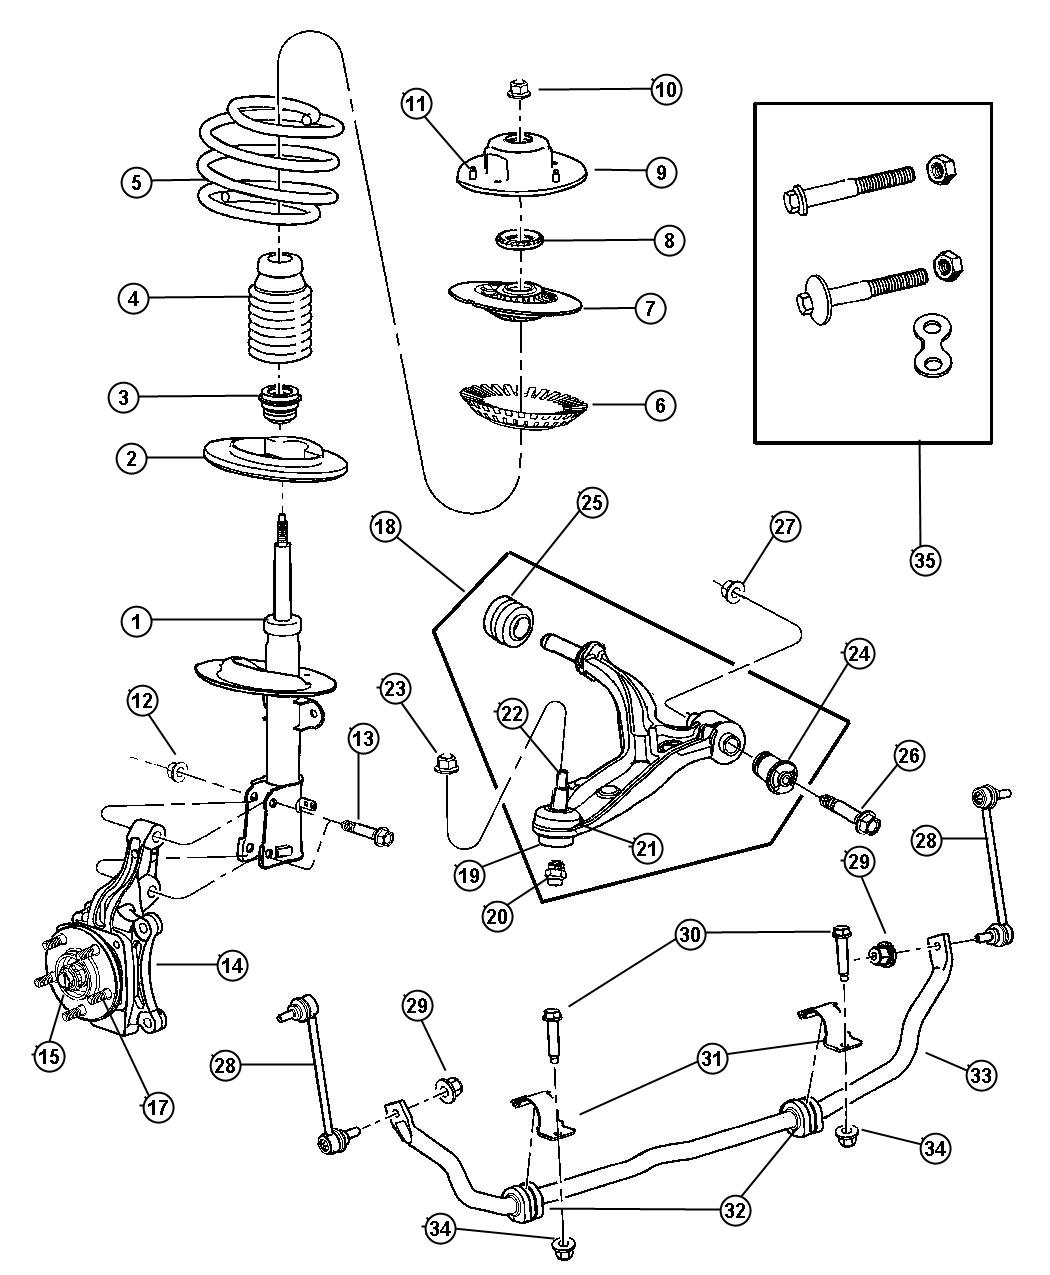 suspension front for 2002 dodge grand caravan. Cars Review. Best American Auto & Cars Review